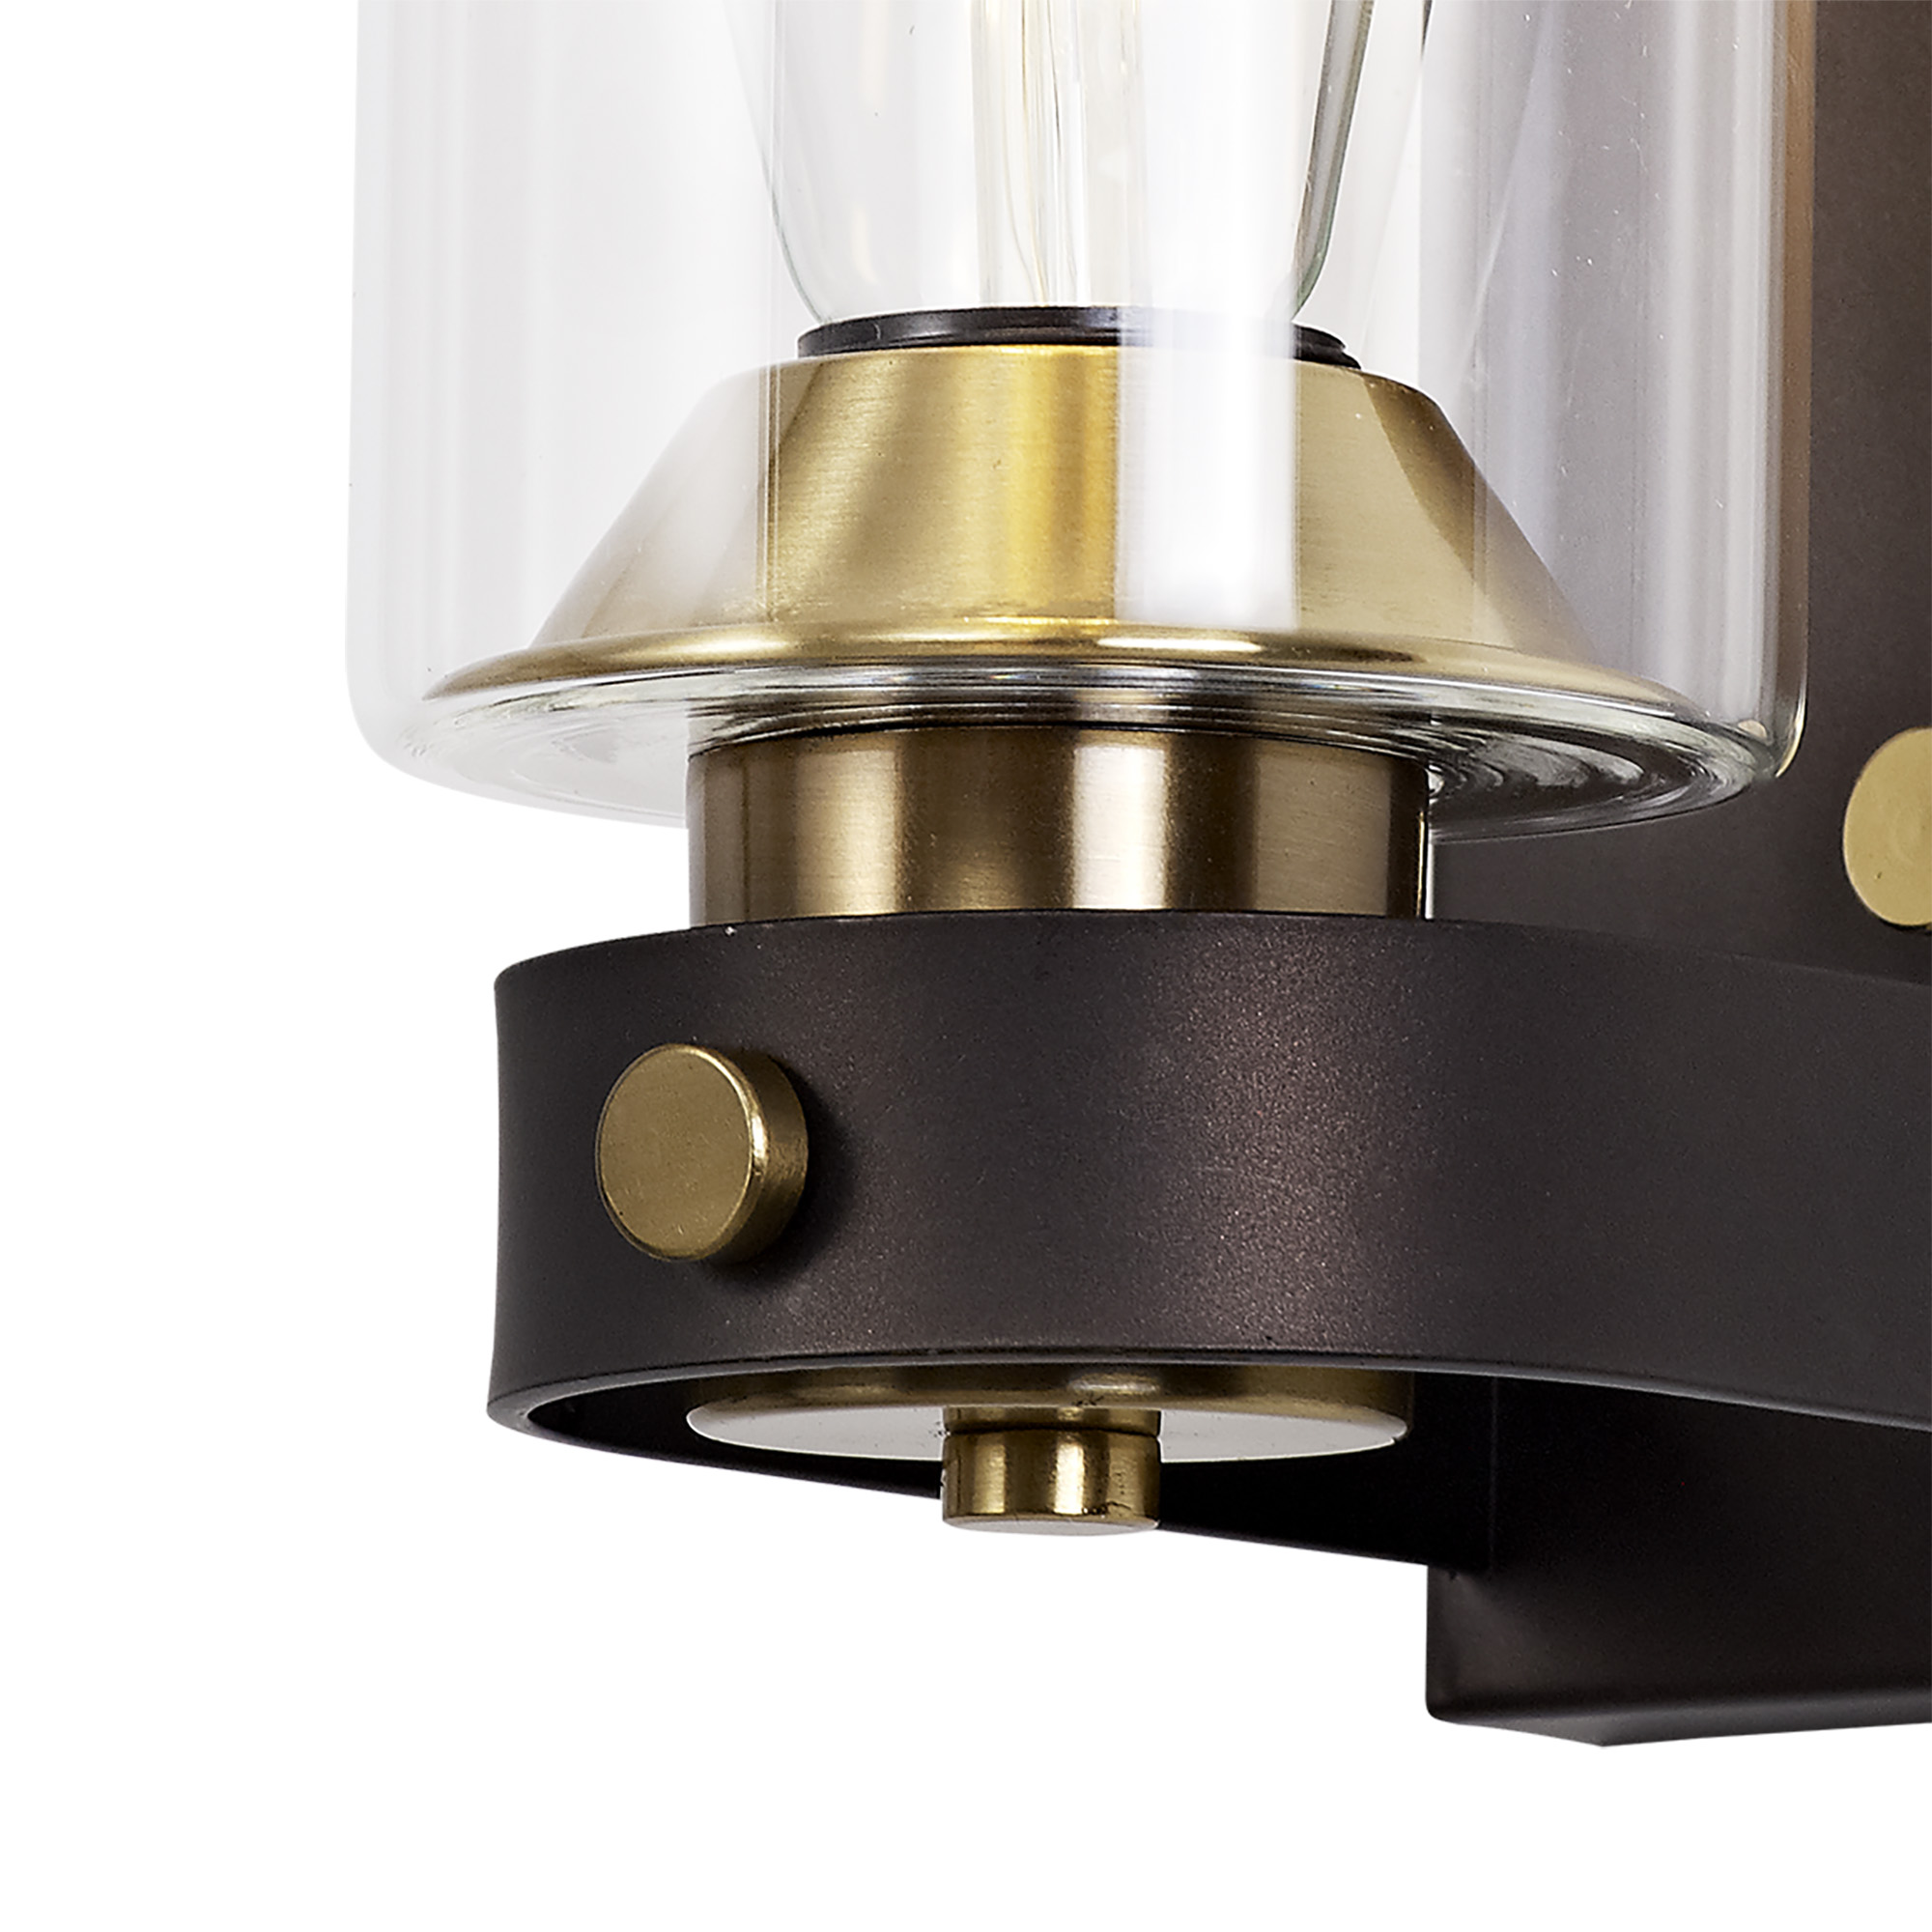 Wall Lamp 1 Light E27, Brown Oxide/Bronze With Clear Glass Shades